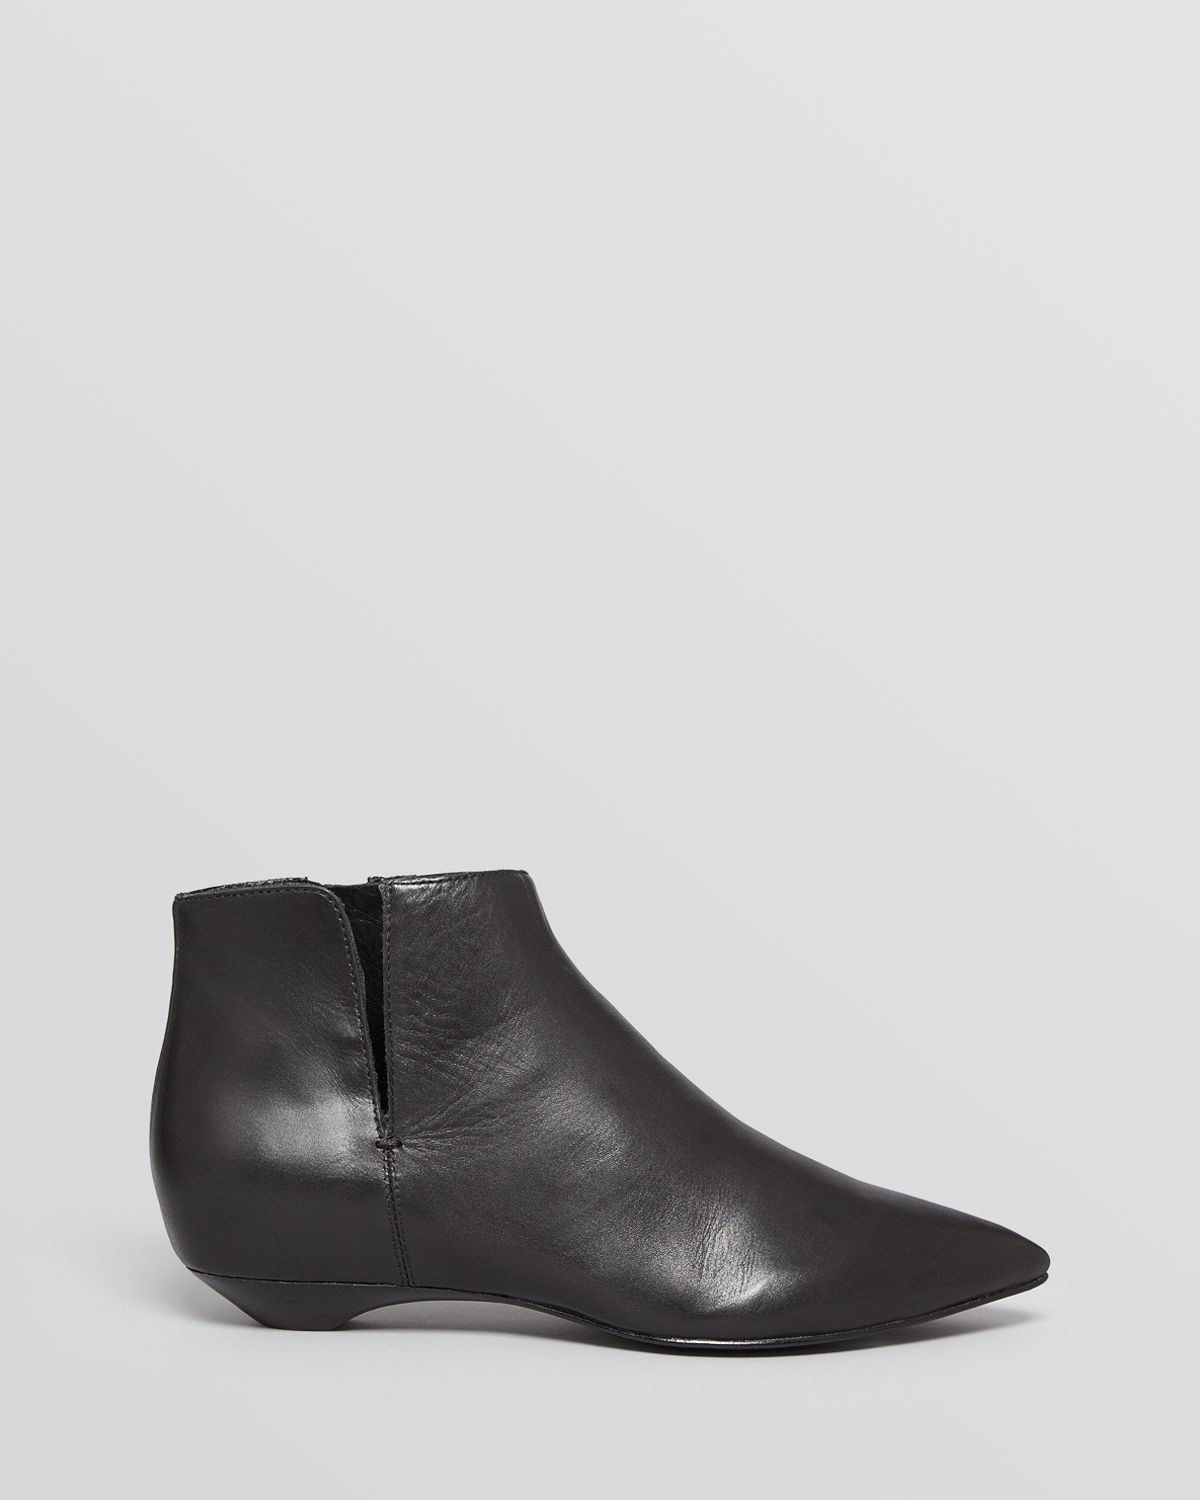 Lyst Sigerson Morrison Pointed Toe Flat Booties